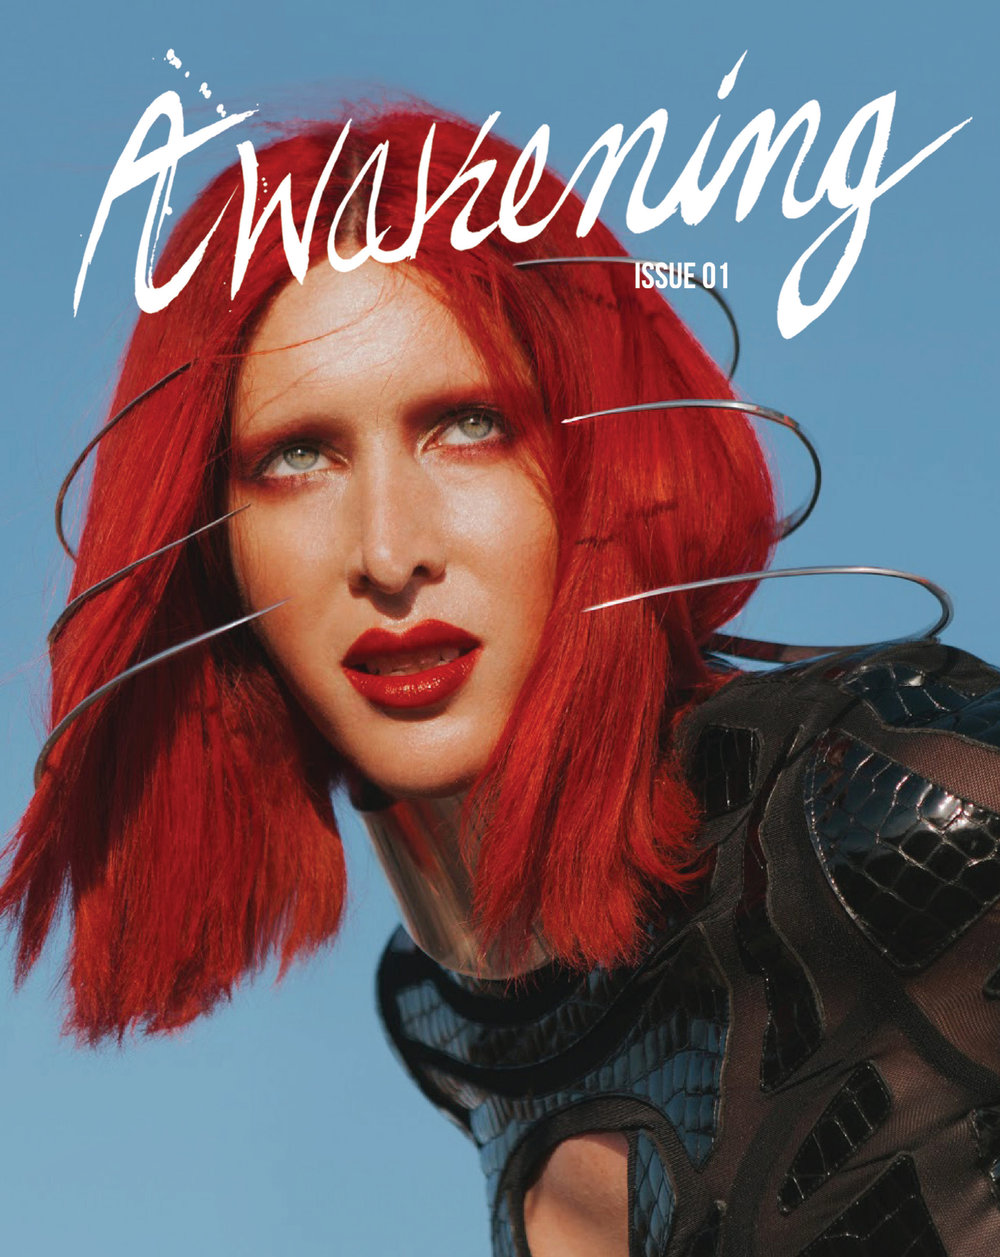 Awakening Issue 01 × Elias Tahan -